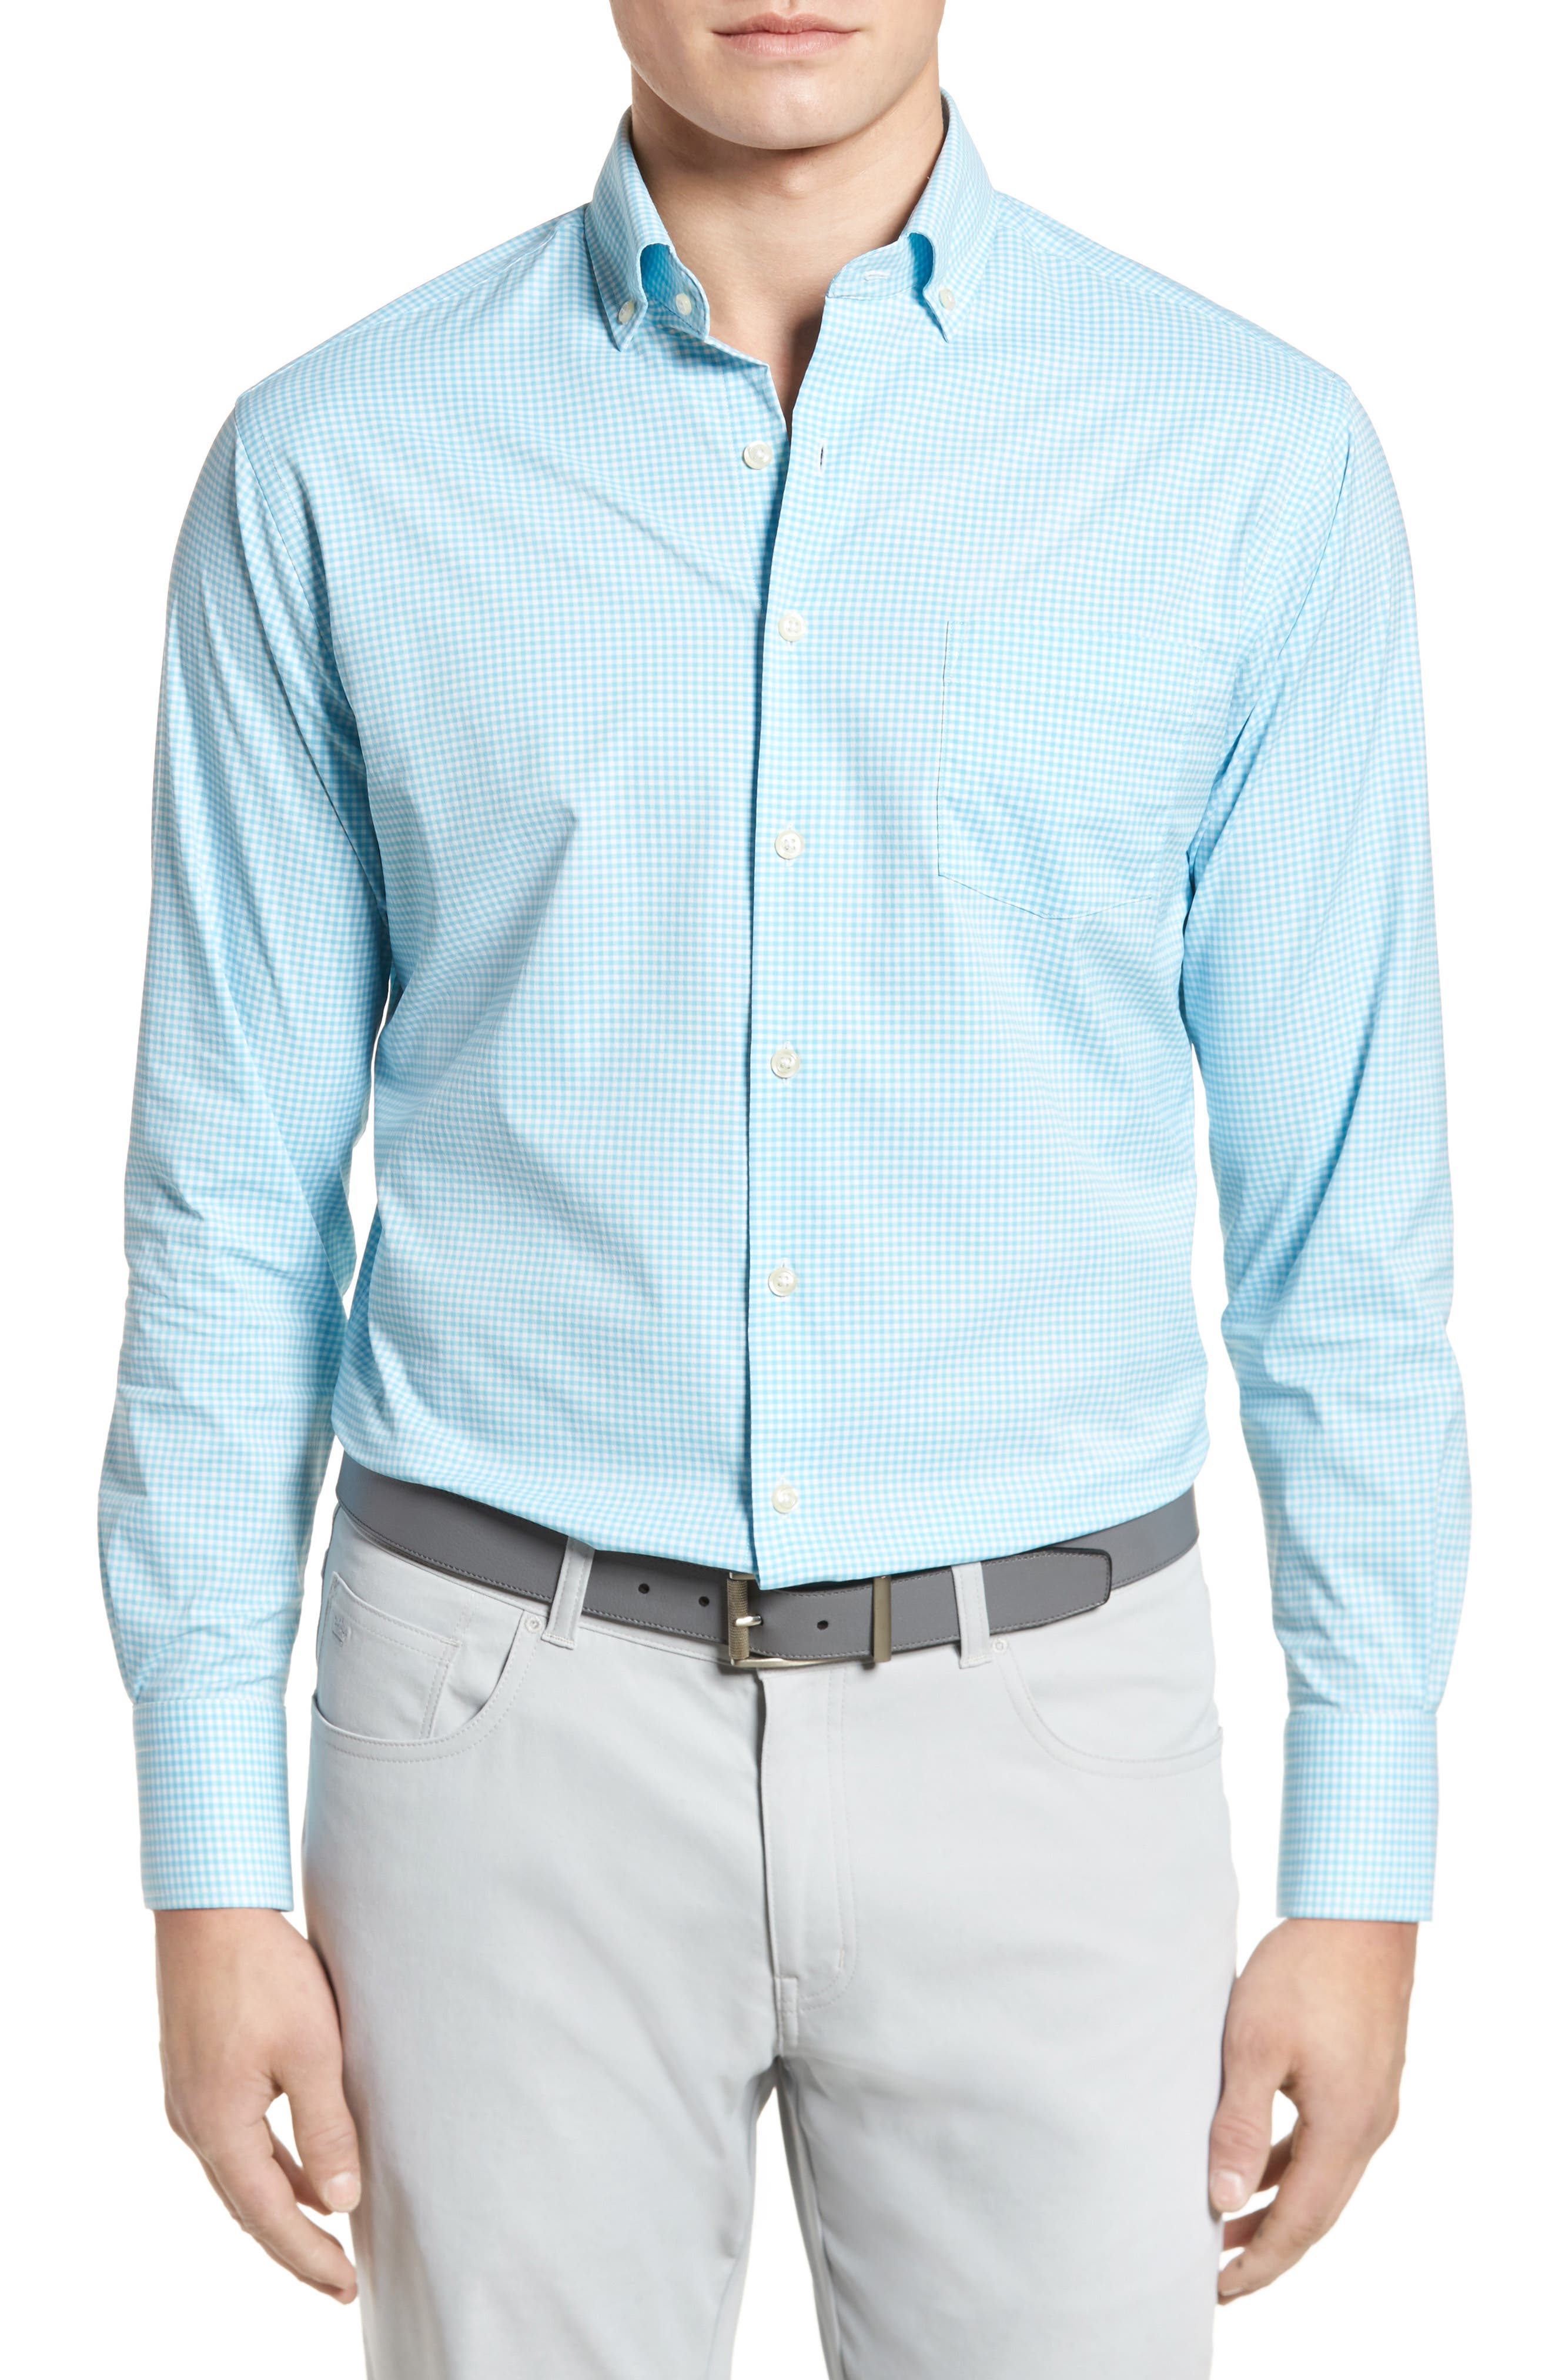 Mimi Regular Fit Check Performance Sport Shirt,                             Main thumbnail 1, color,                             Grotto Blue/ White